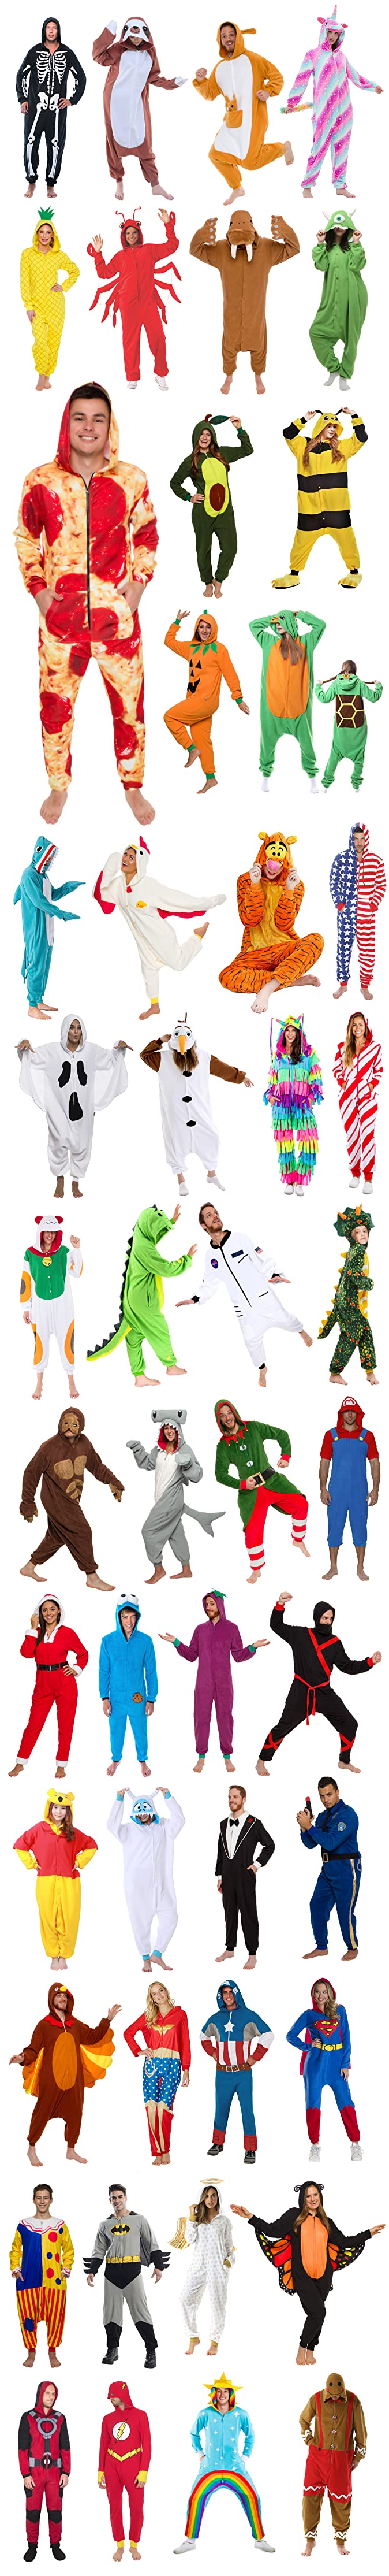 Funniest-And-Best-Adult-Onsies-One-Piece-Pajama-Cosplay